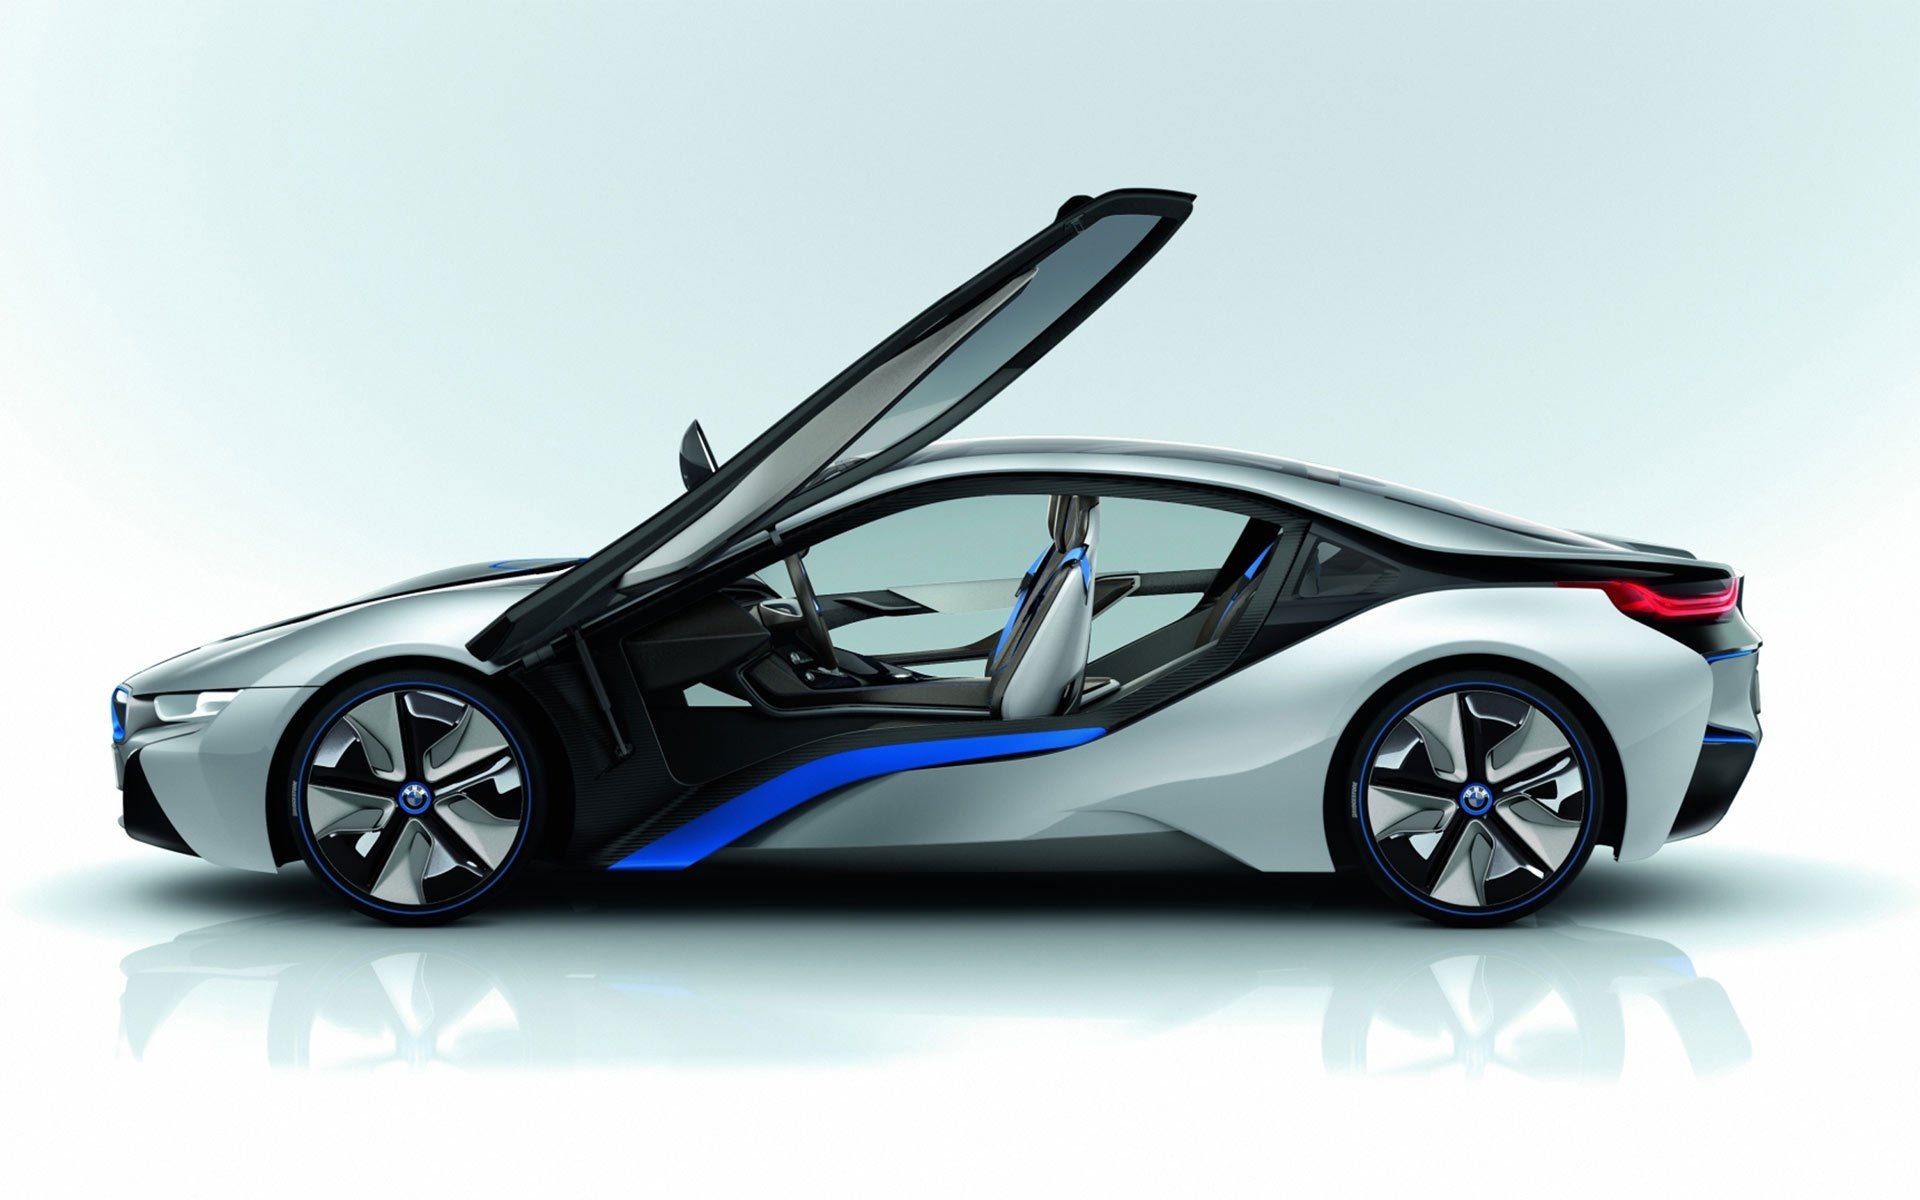 Bmw I8 Wallpaper Desktop Wallpapersafari